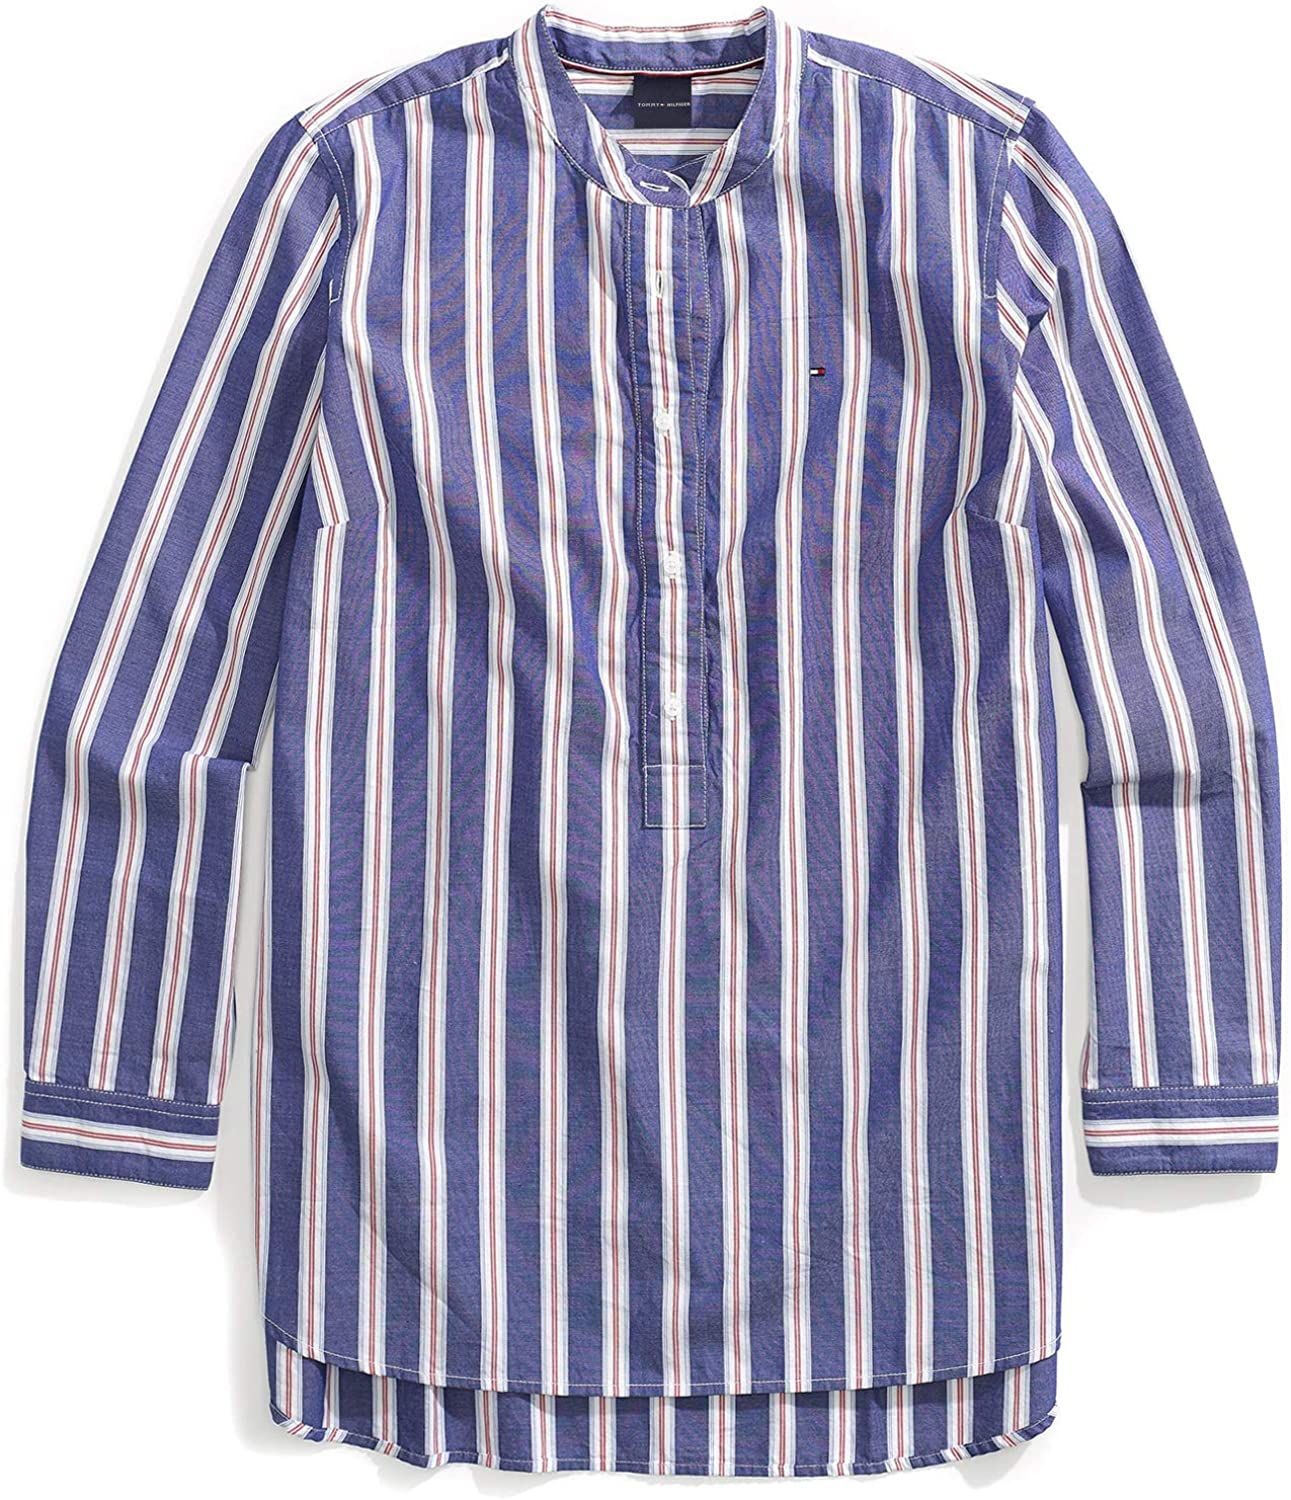 Tommy Hilfiger Women's Adaptive Tunic Shirt with Magnetic Buttons